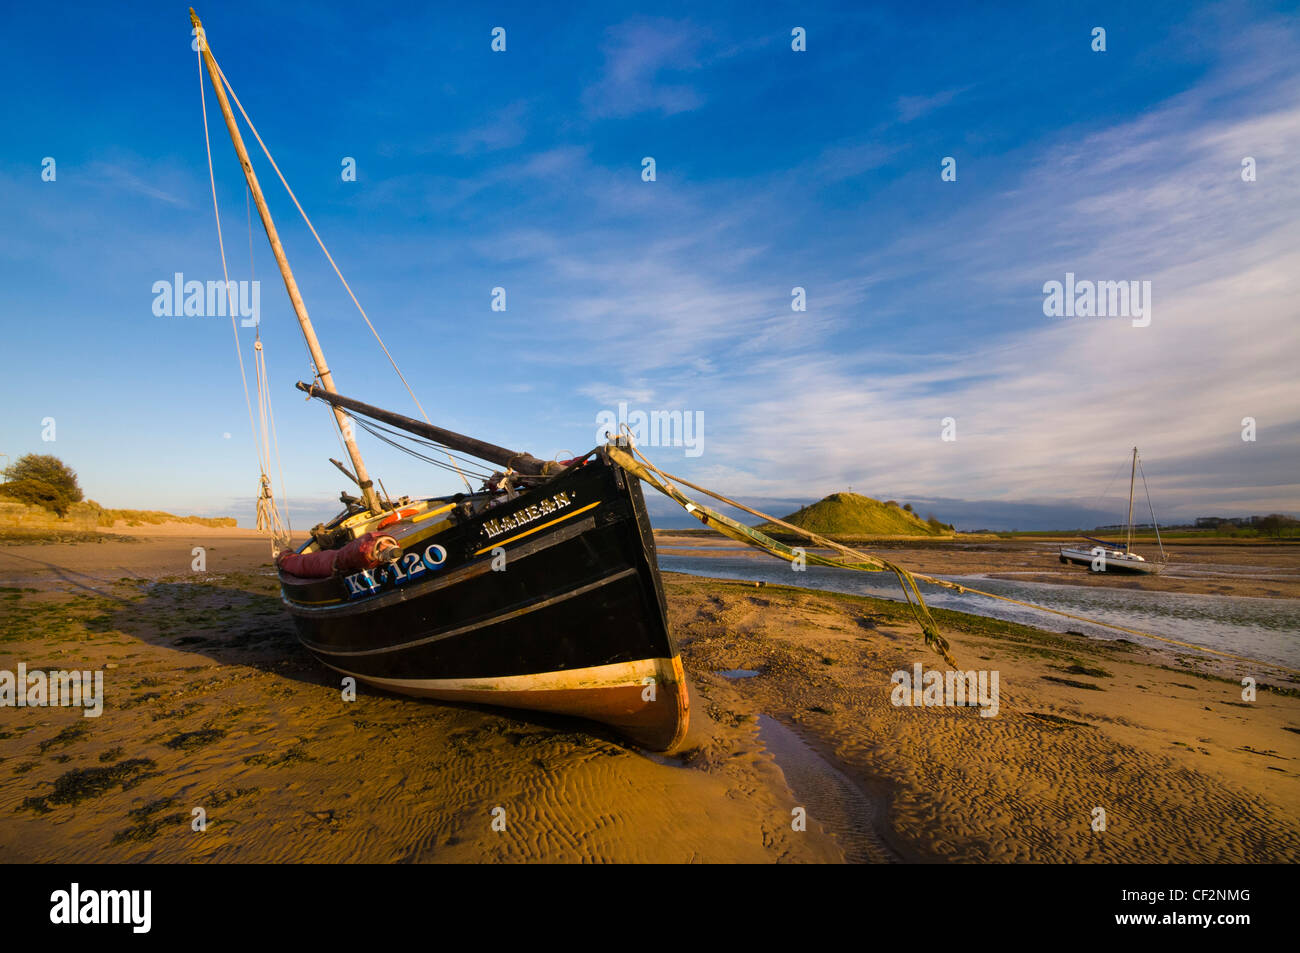 A sailing boat beached in the River Aln estuary at Alnmouth on the North East coast of England looking towards Church - Stock Image